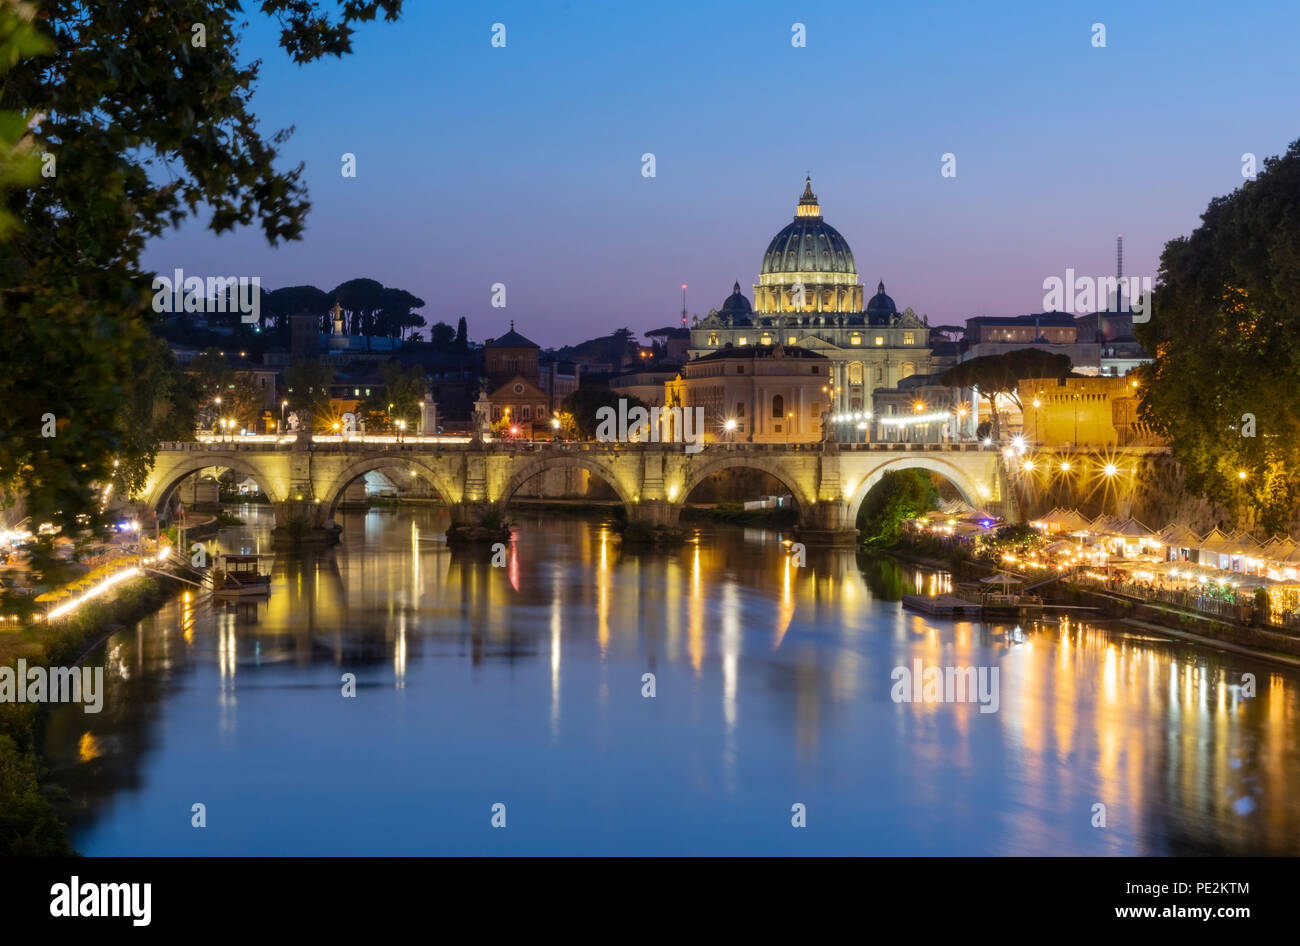 Rome at night. View over Tiber river on Vatican and dome of St. Peter's Basilica - Stock Image